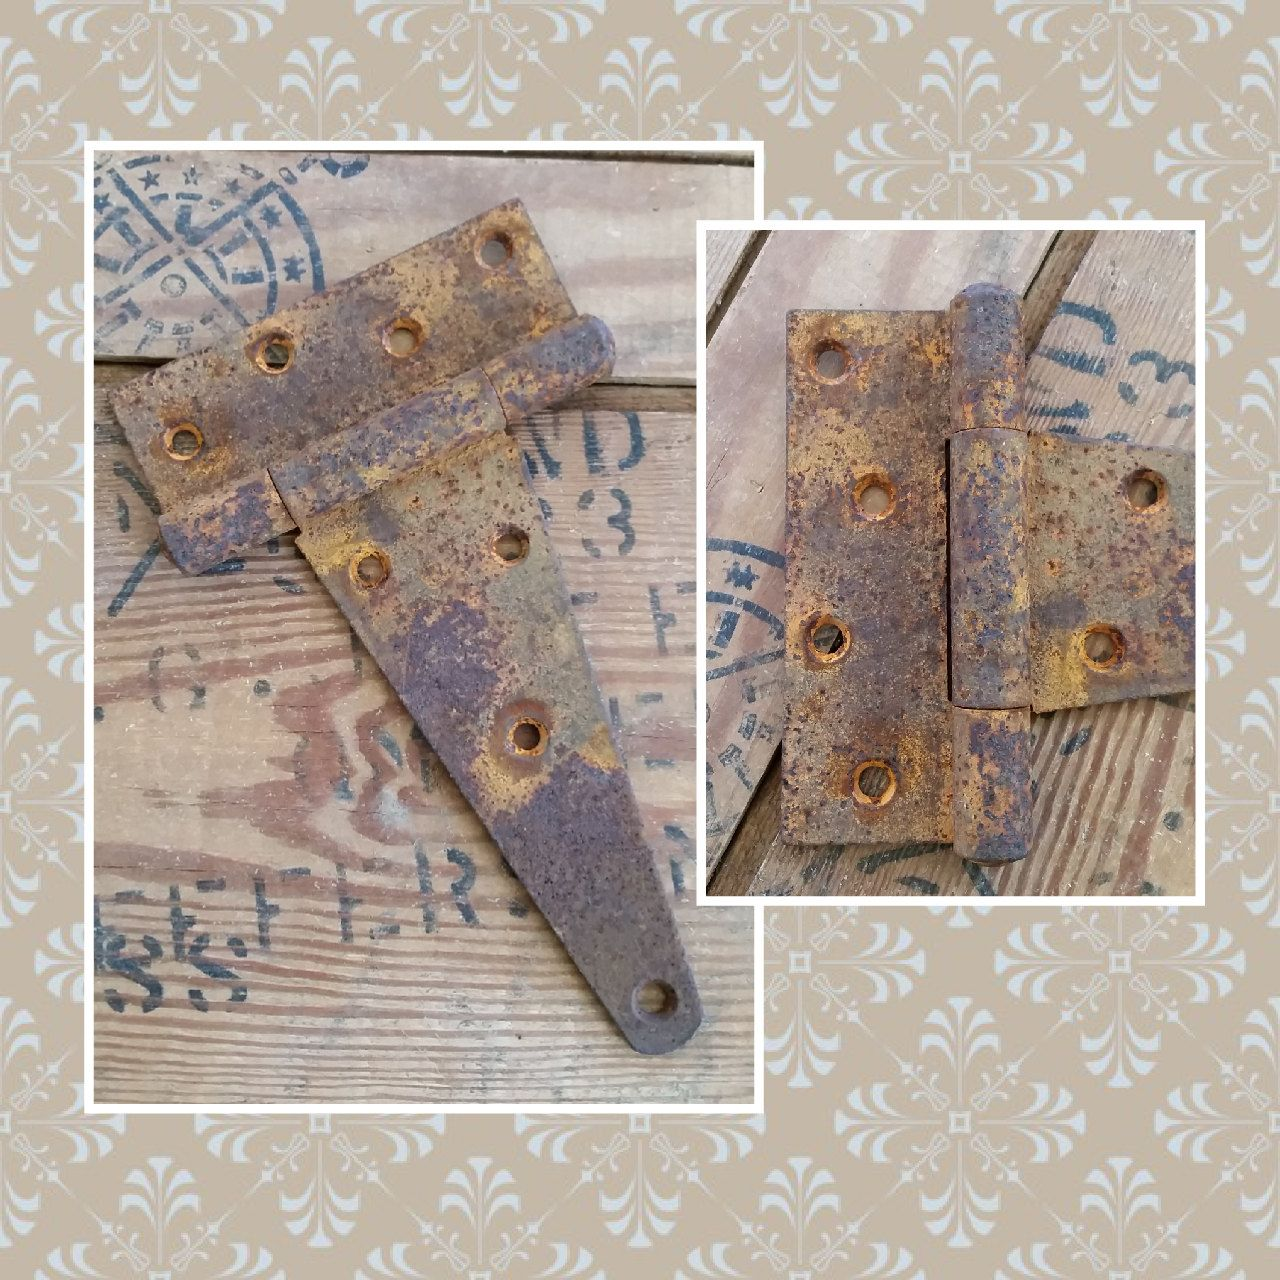 Large Vintage Rustic Rusty Metal Industrial Salvaged Furniture Hinge Or Cabinet  Hinge. Hardware, Restoration Hardware, Salvage Hardware By LoveTheJunk On  ...